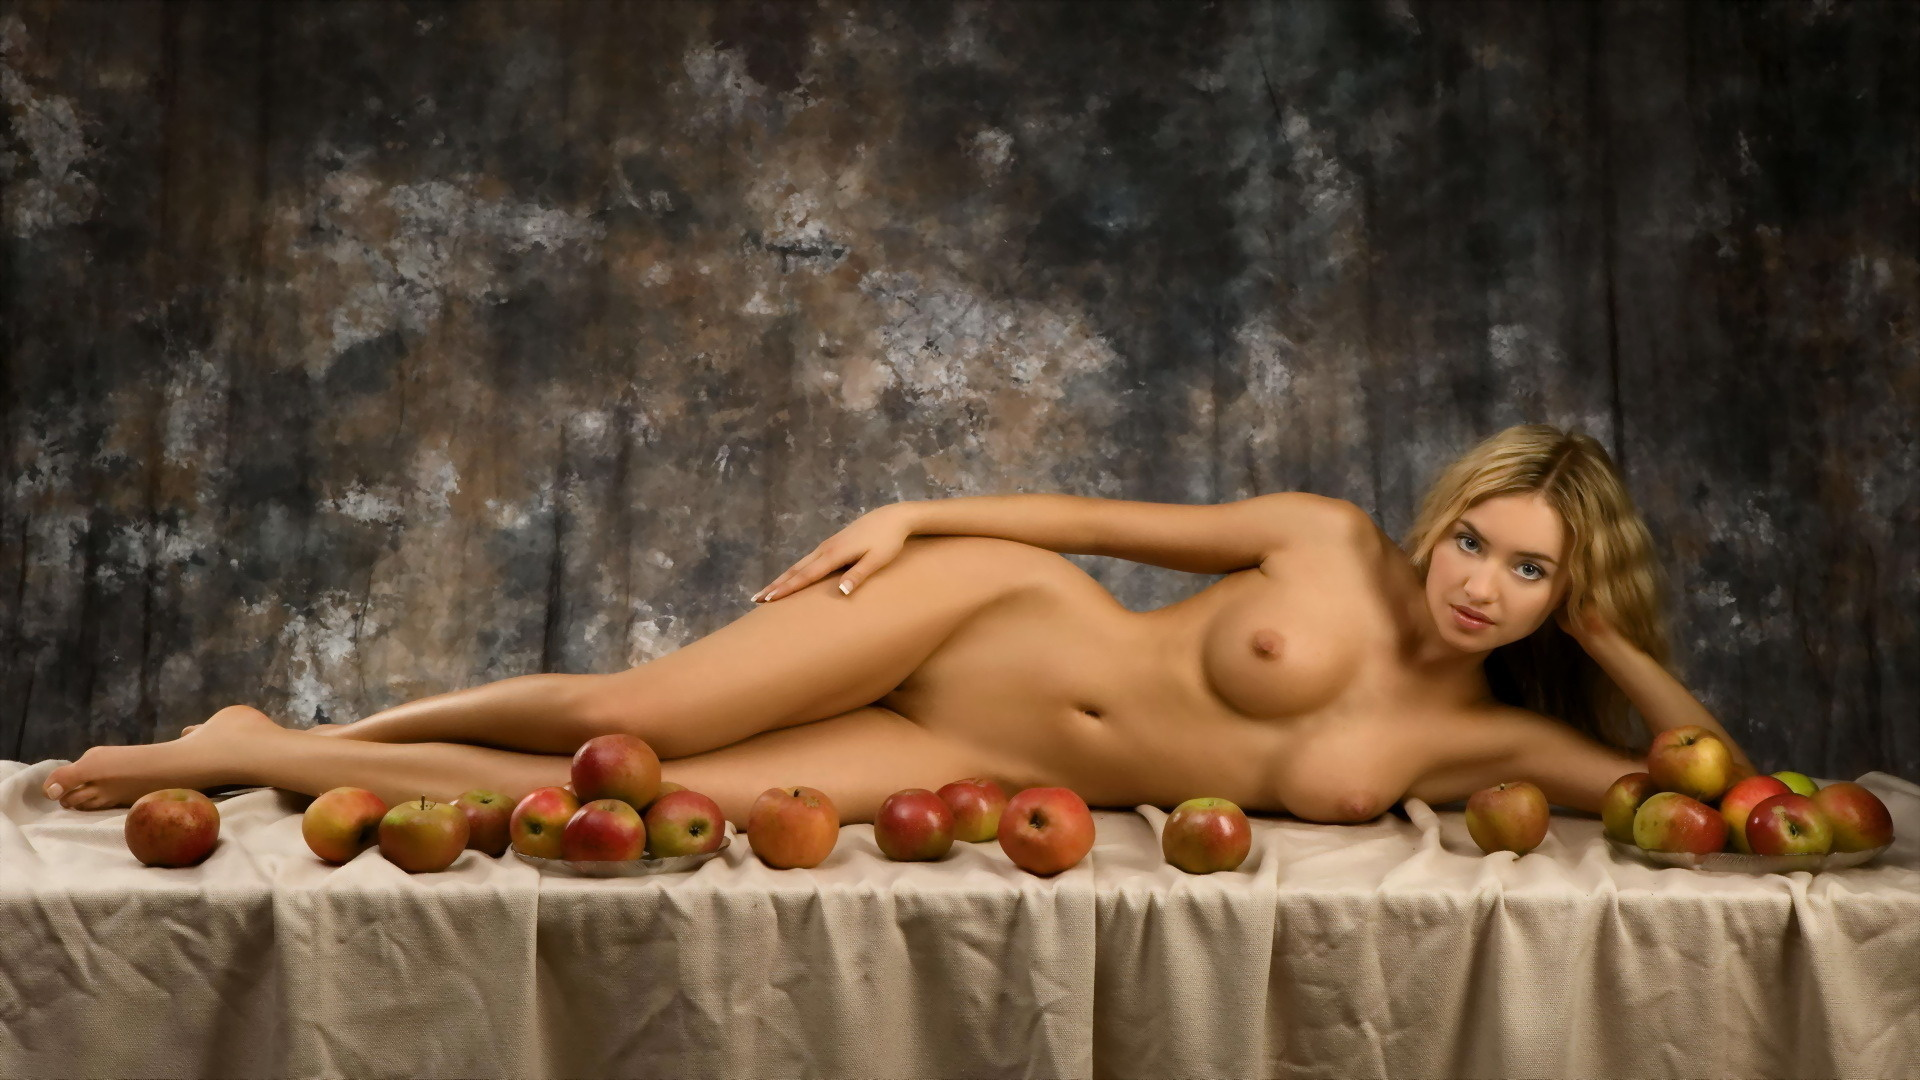 Late, than Lia may nude wallpaper 1920 x 1080